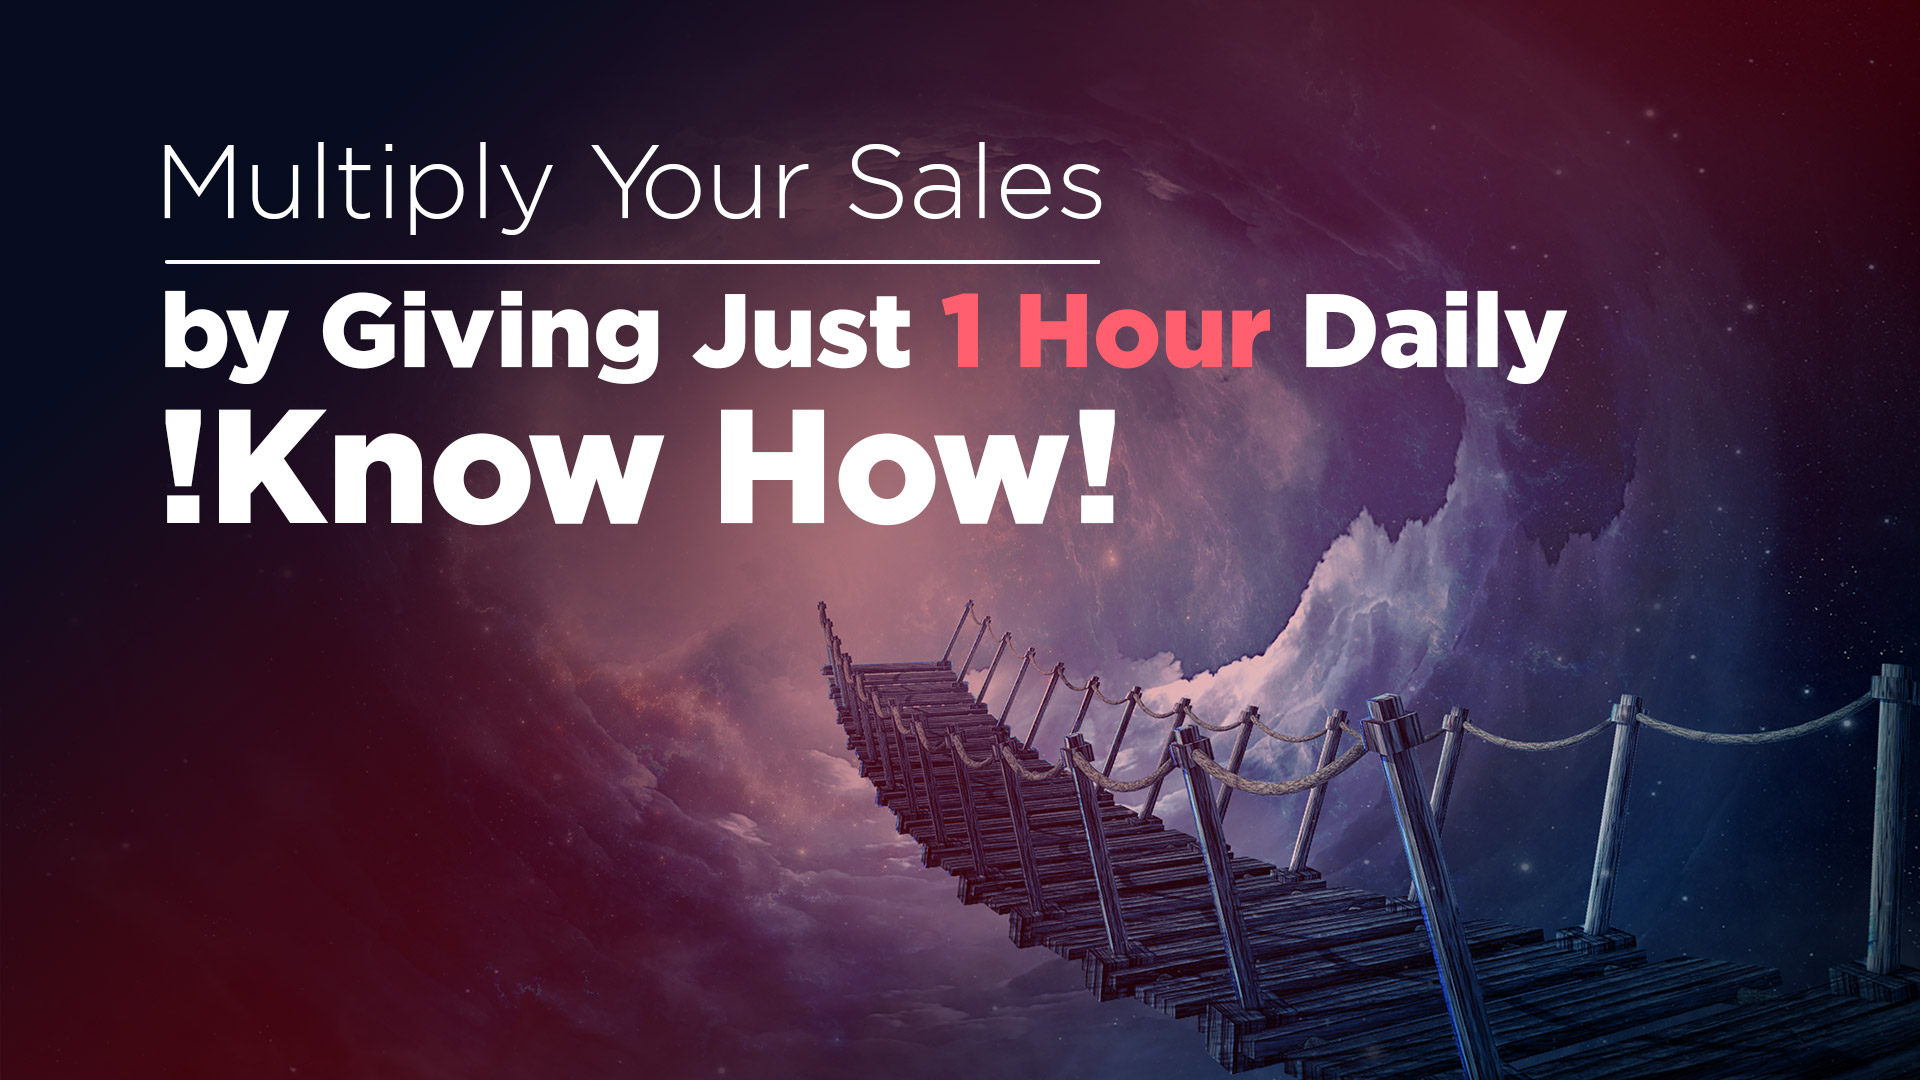 Multiply Your Sales by Giving Just 1 Hour Daily! Know How!